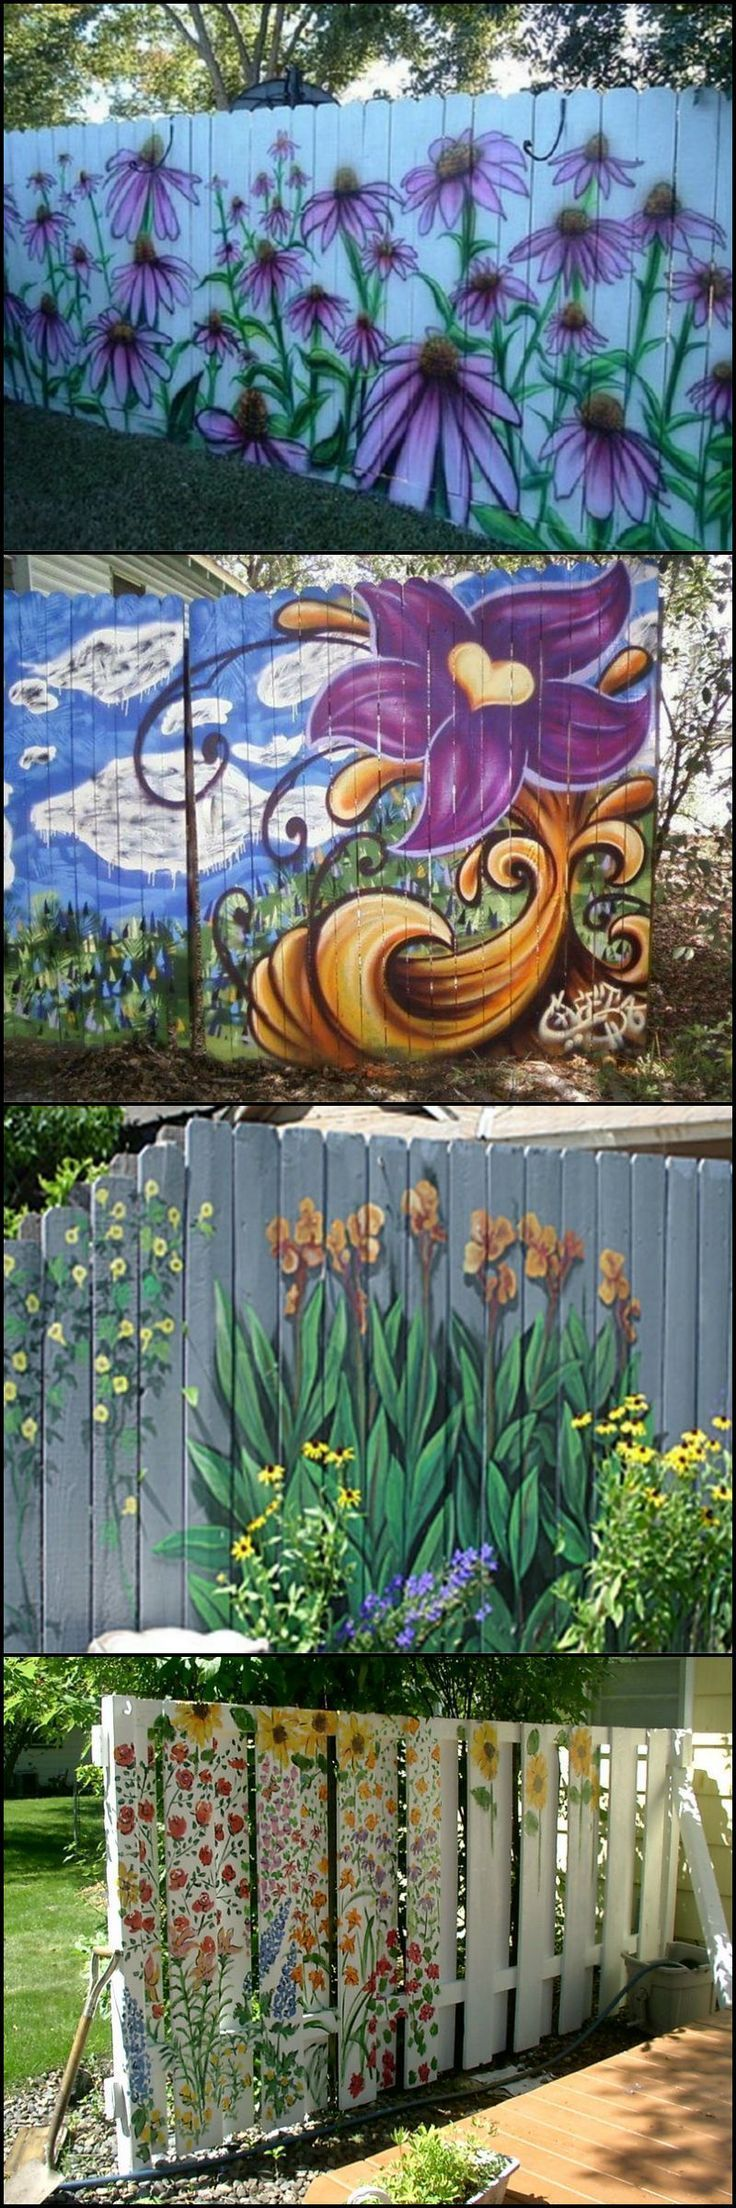 Find and save ideas about Outdoor wall decorations on Pinterest. | See more ideas about Outdoor walls, Outdoor wall art and Garden wall decorations.  #OutdoorWallDecor #OutdoorWallDecorSiding #ArtsandCrafts